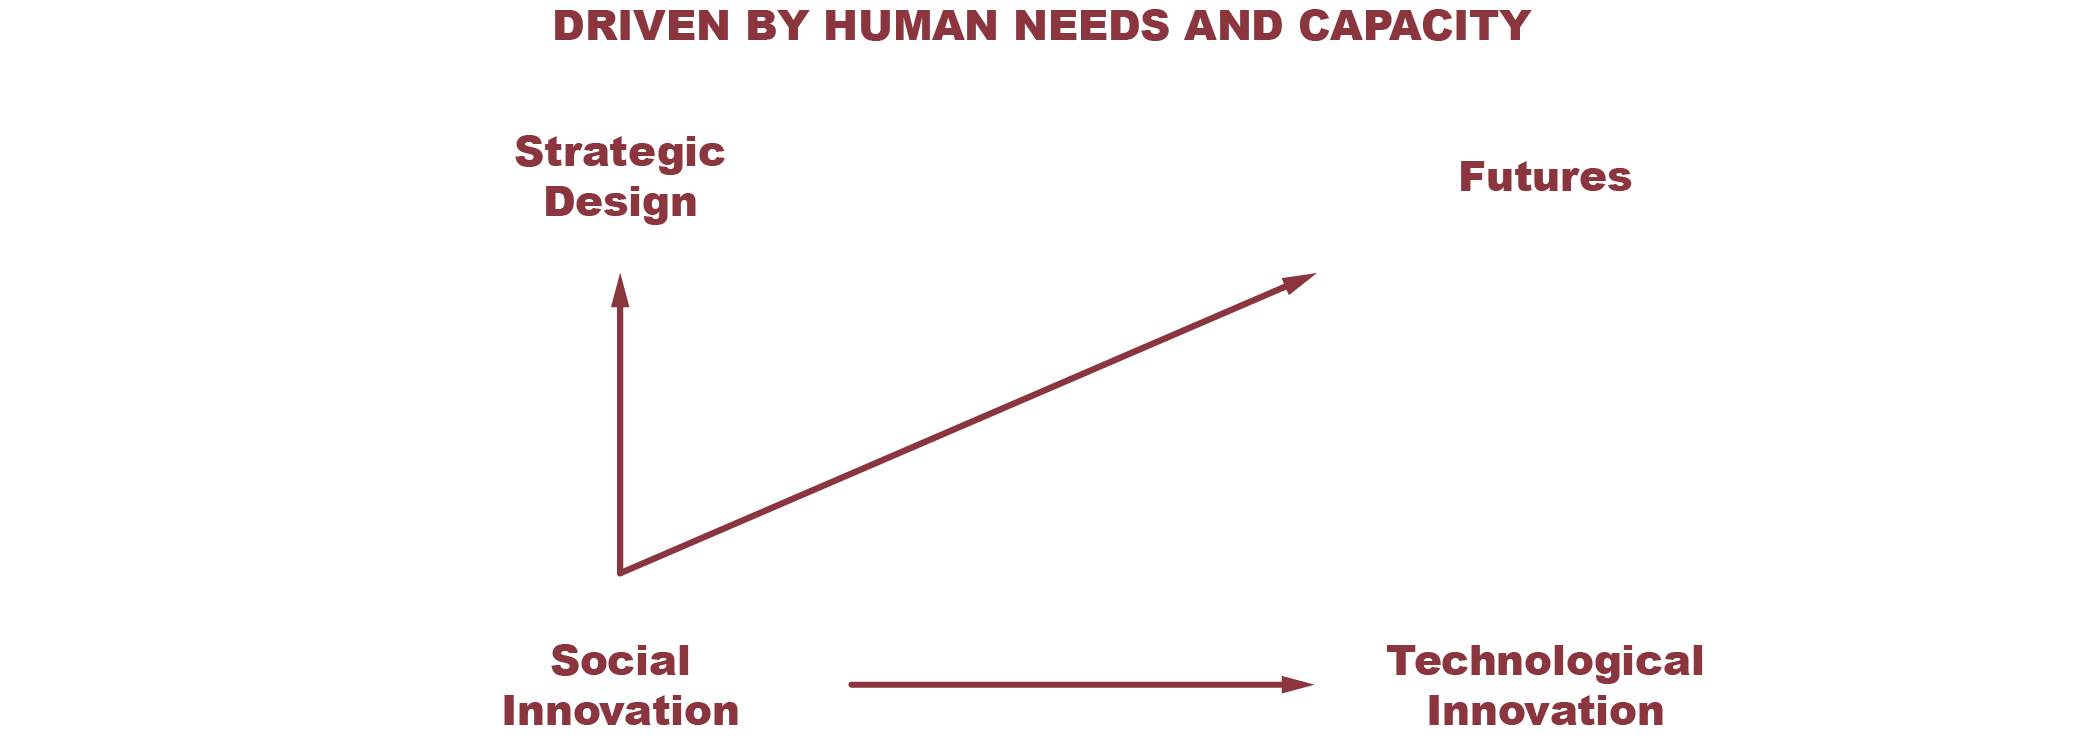 DRIVEN BY HUMAN NEED AND CAPACITY